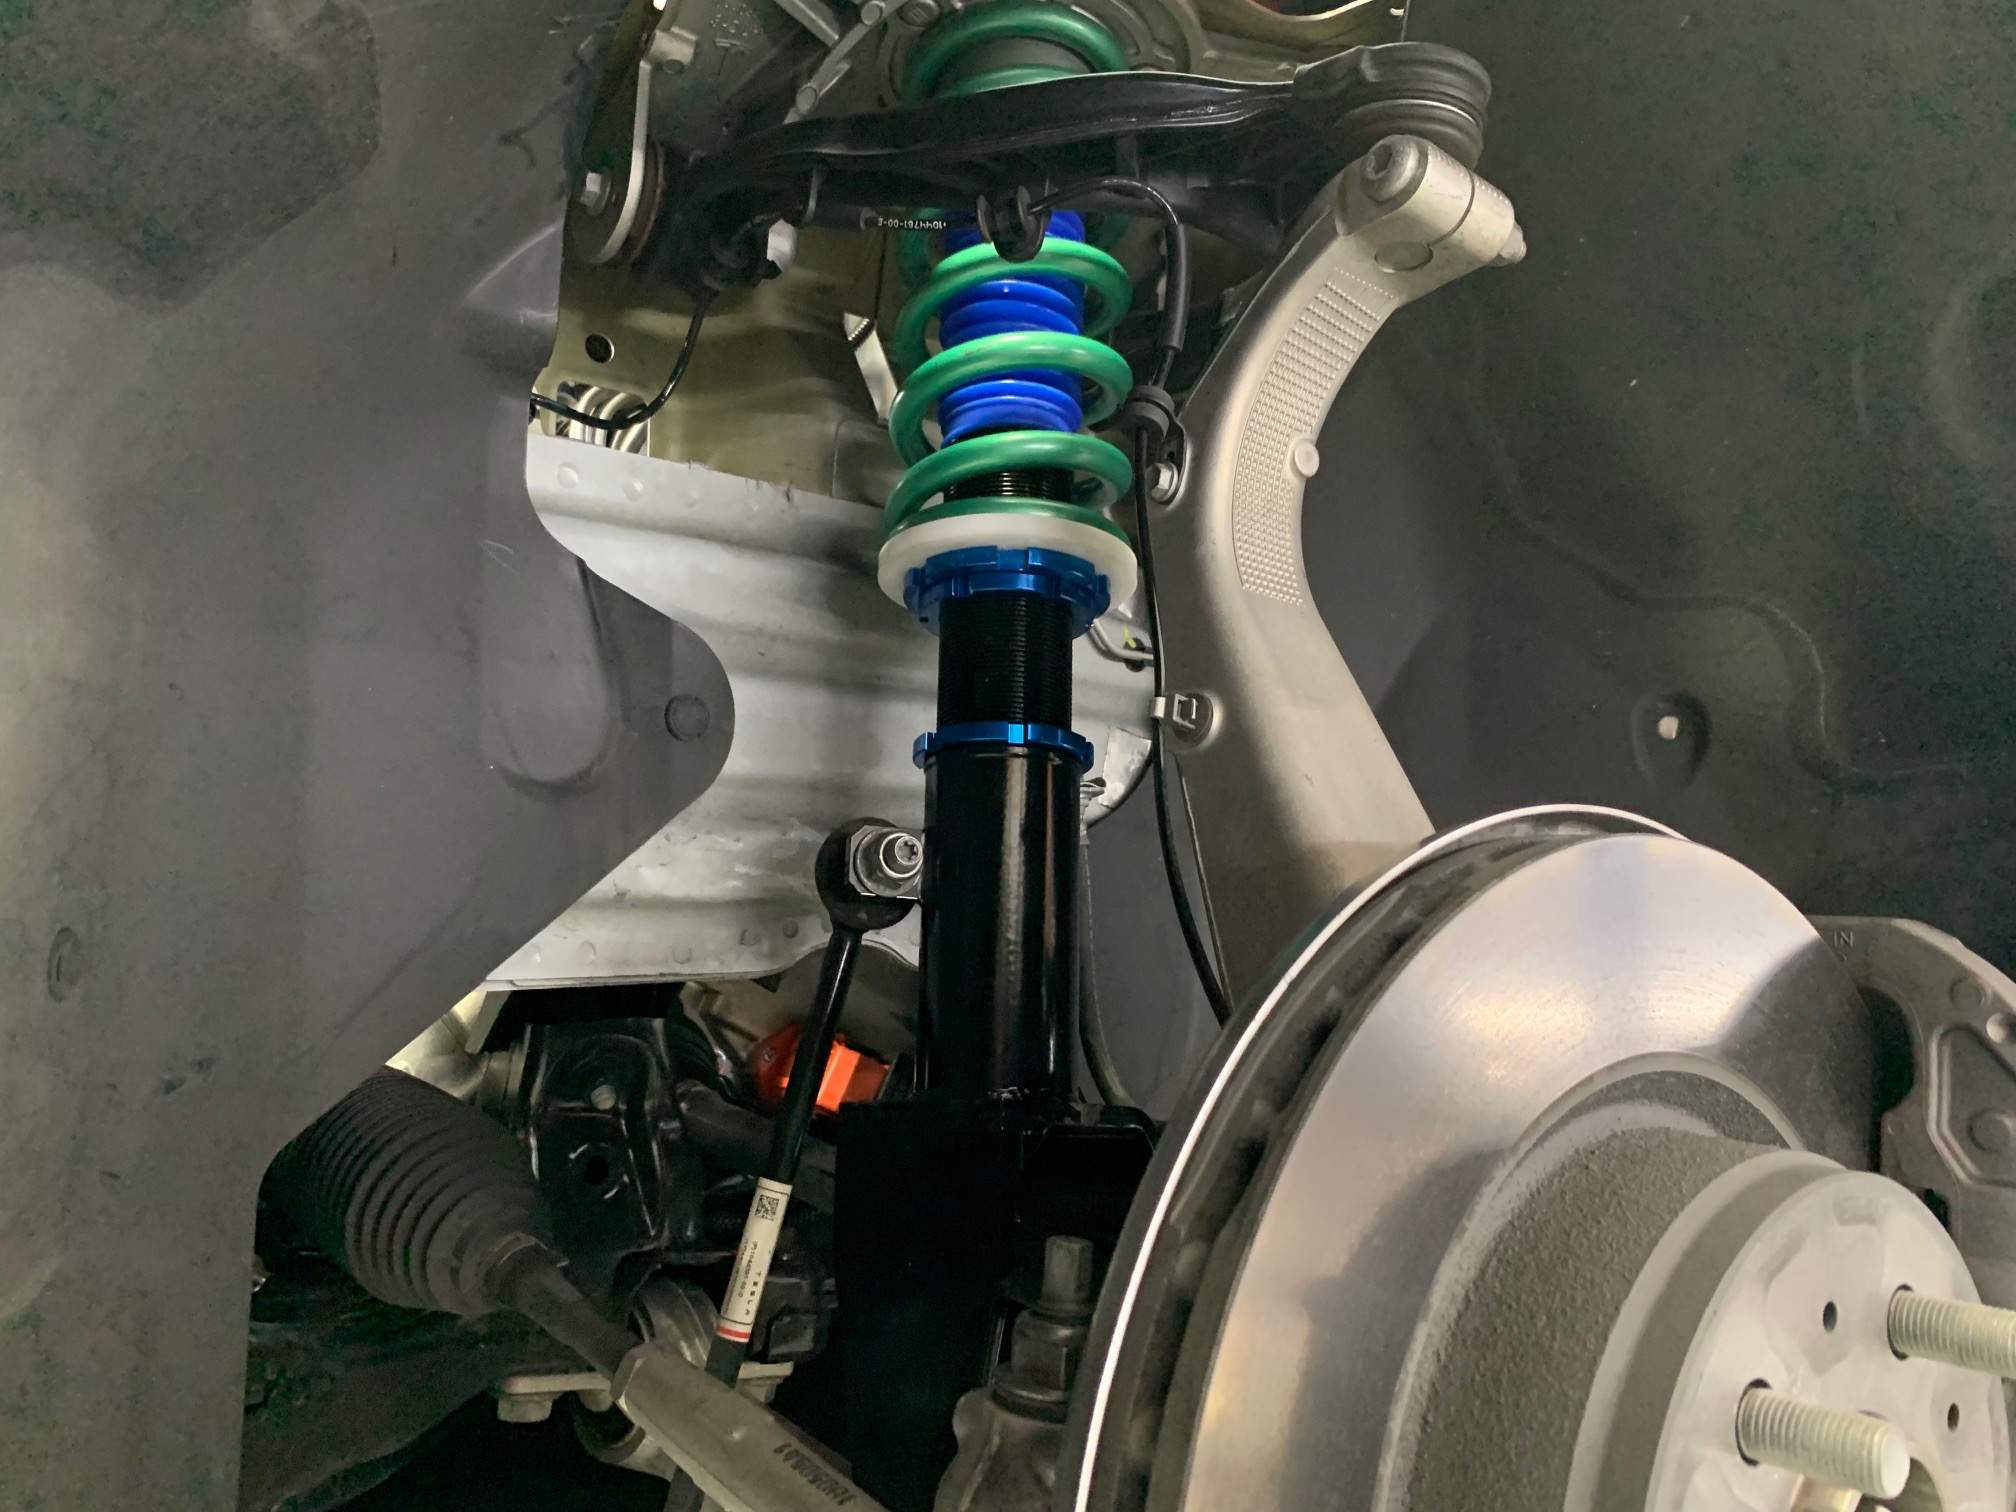 SUSPENSION INSTALLS - Want to ride higher or lower than your factory ride height settings? Let us order and/or install coilovers, lowering springs, or air ride systems.